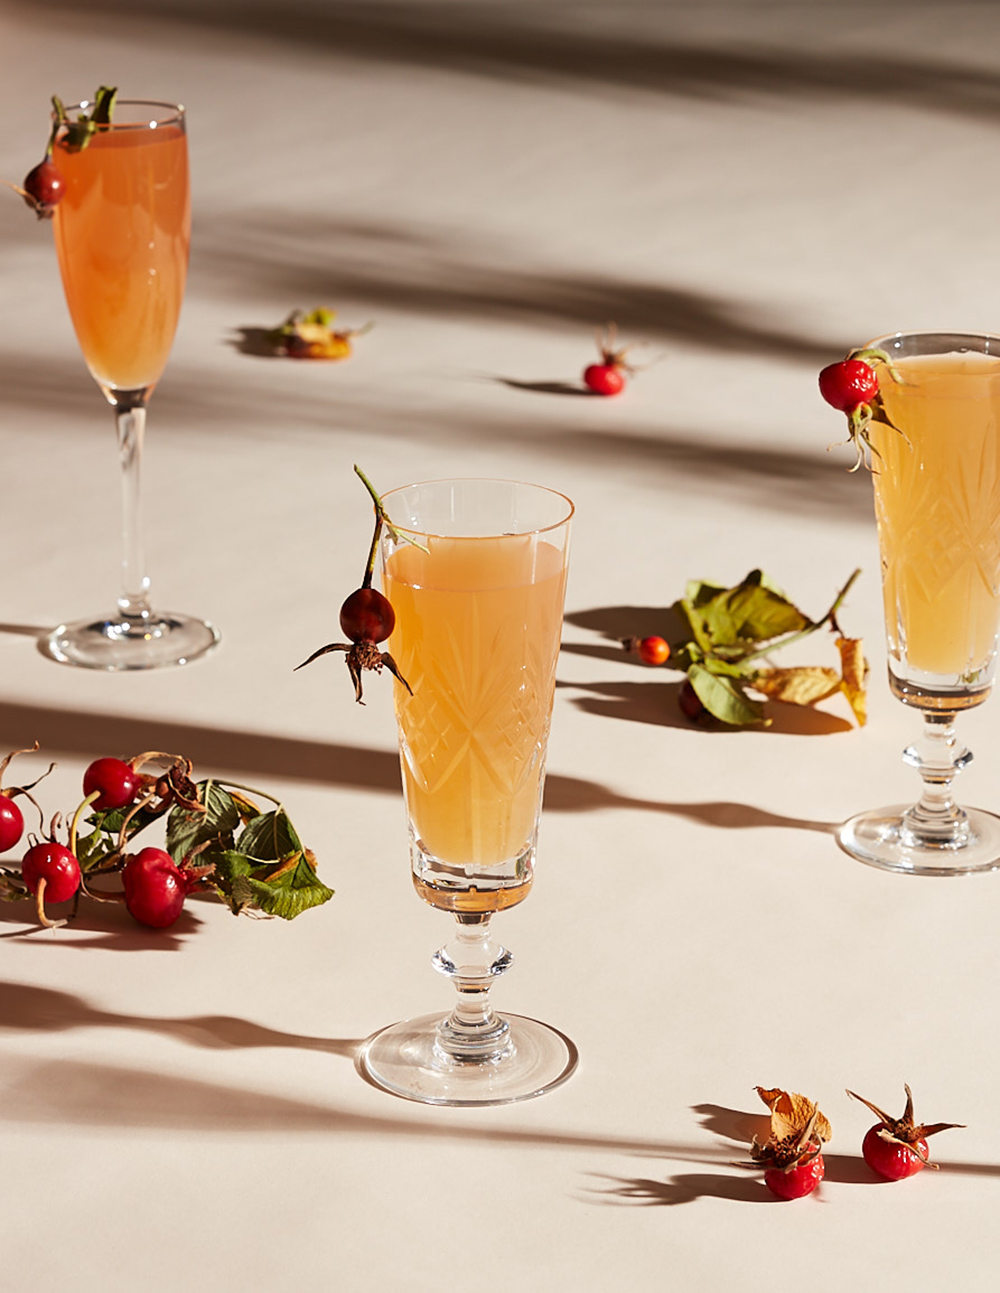 rosehip-prosecco-cocktail-drink-styling-prop-stylist-setdesigner-lifestylestylist-lauren-becker.jpg